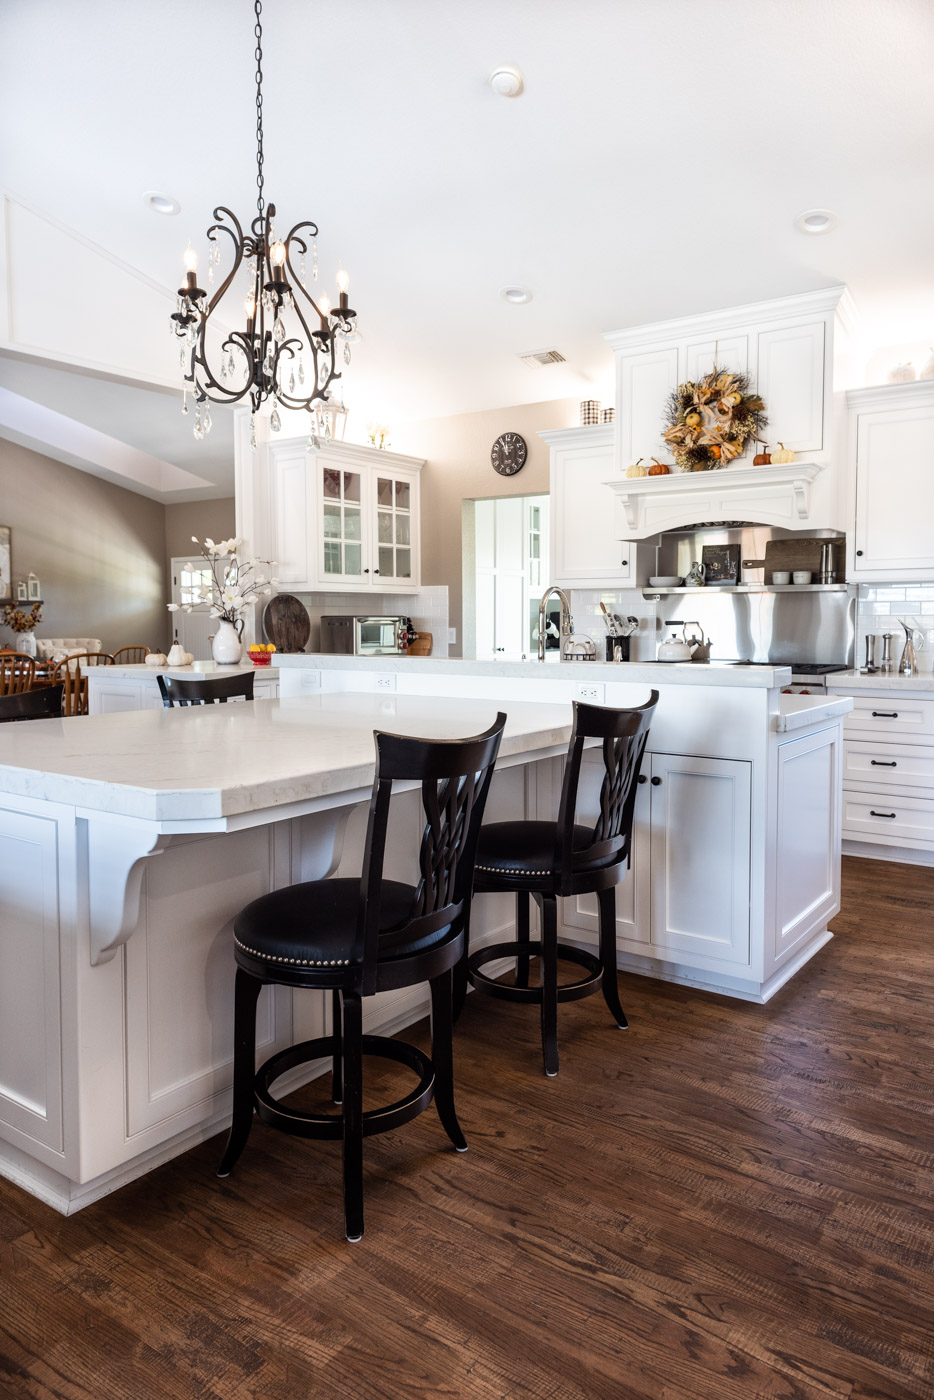 Transitional Country Cottage style kitchen with white recessed panel painted cabinets and custom kitchen island